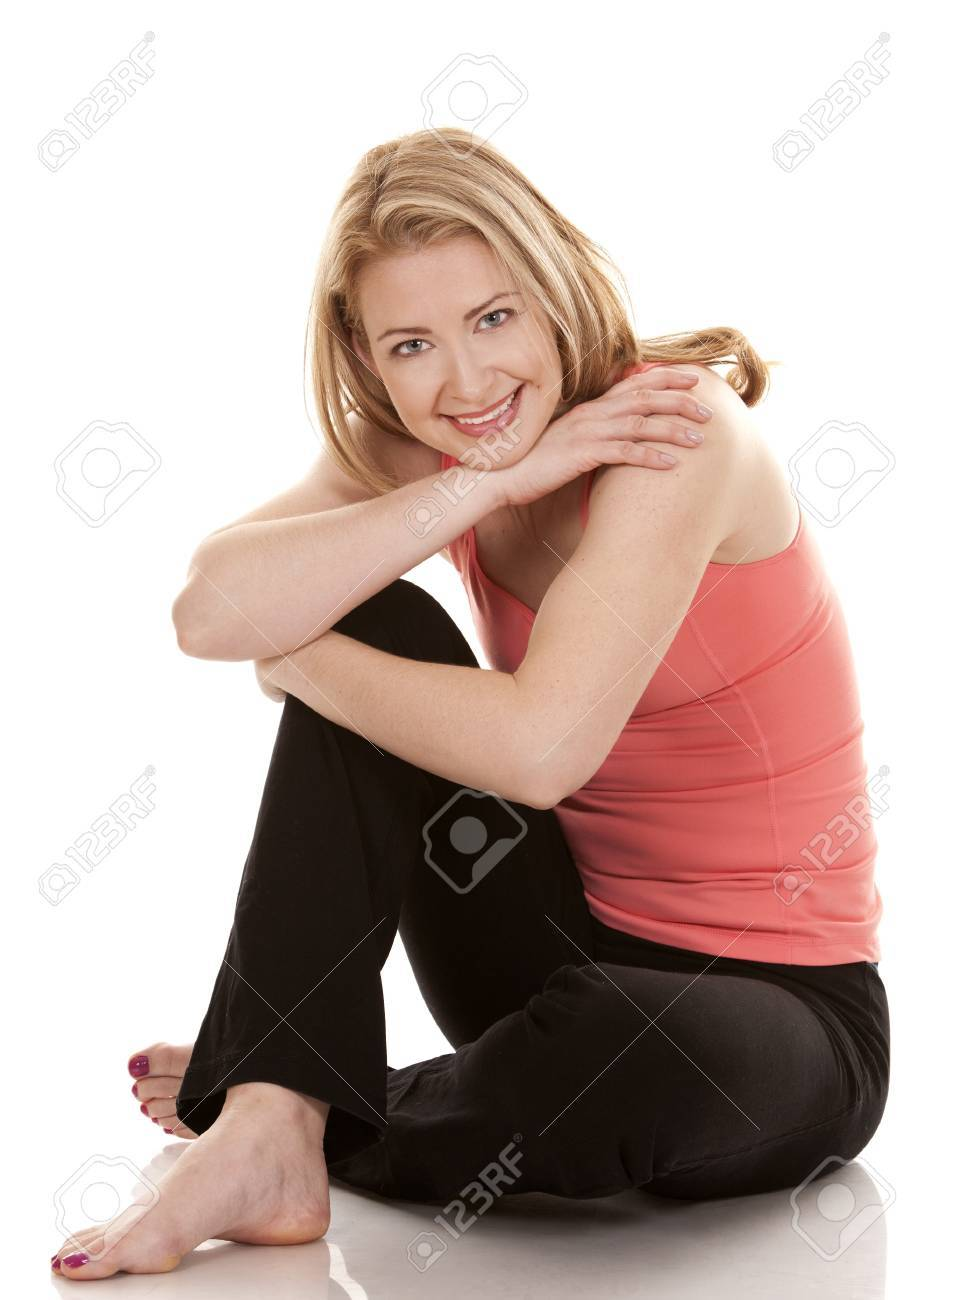 pretty blonde wearing active wear on white background Stock Photo - 19356860